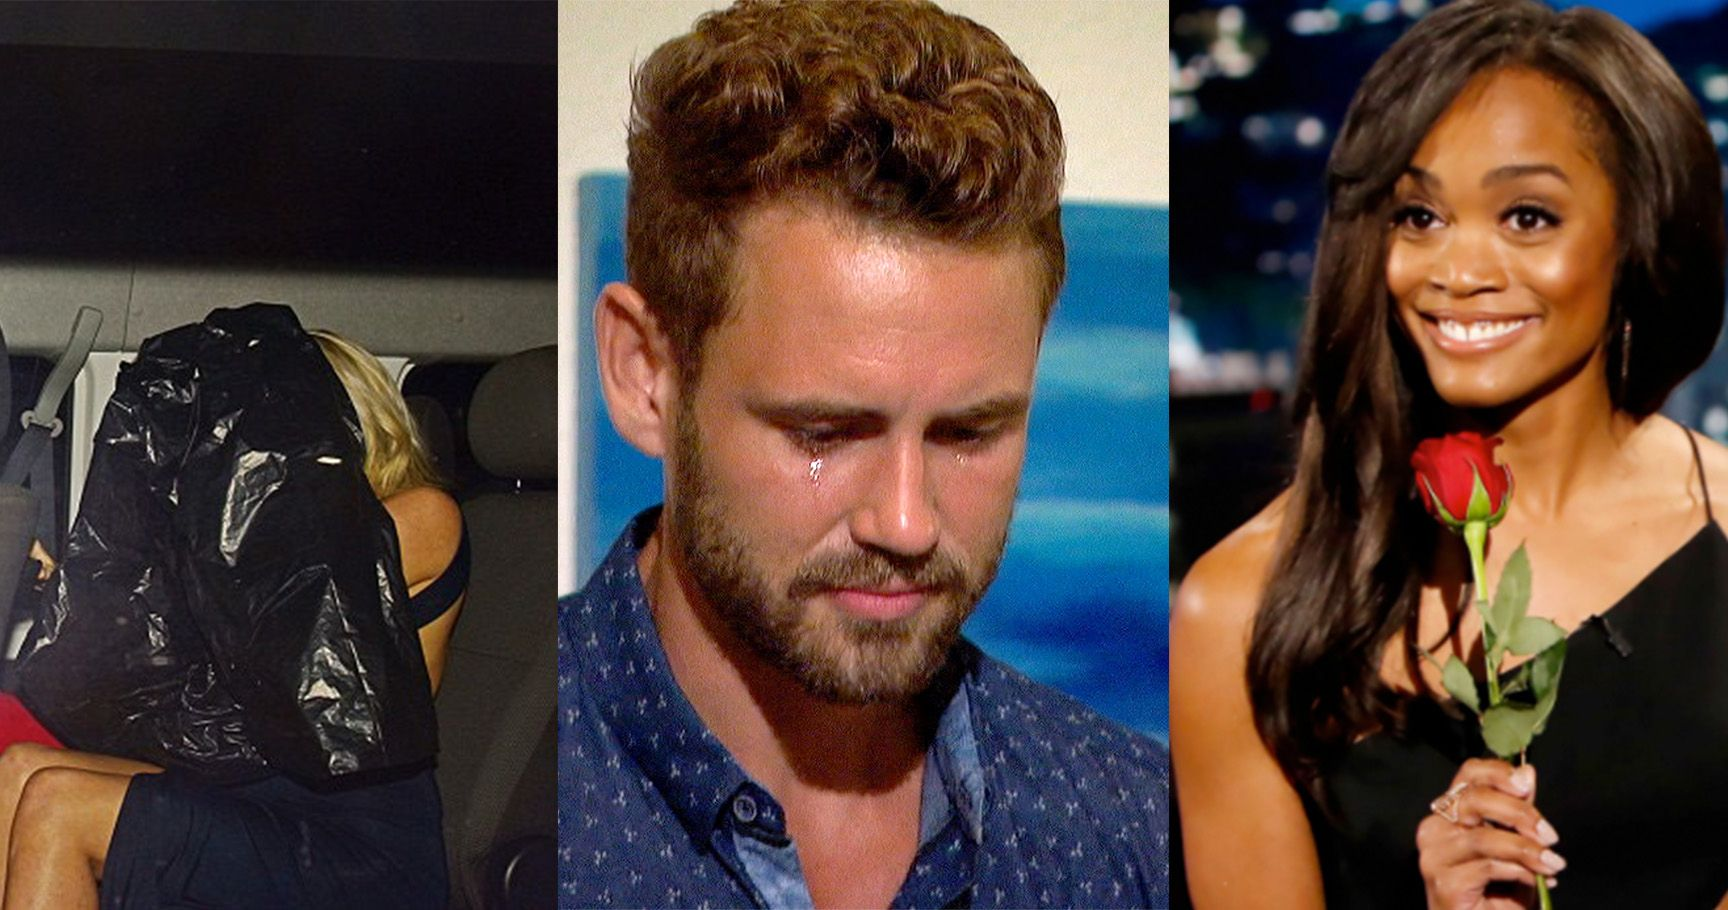 15 Secrets From 'The Bachelor' Franchise ABC Wants Buried